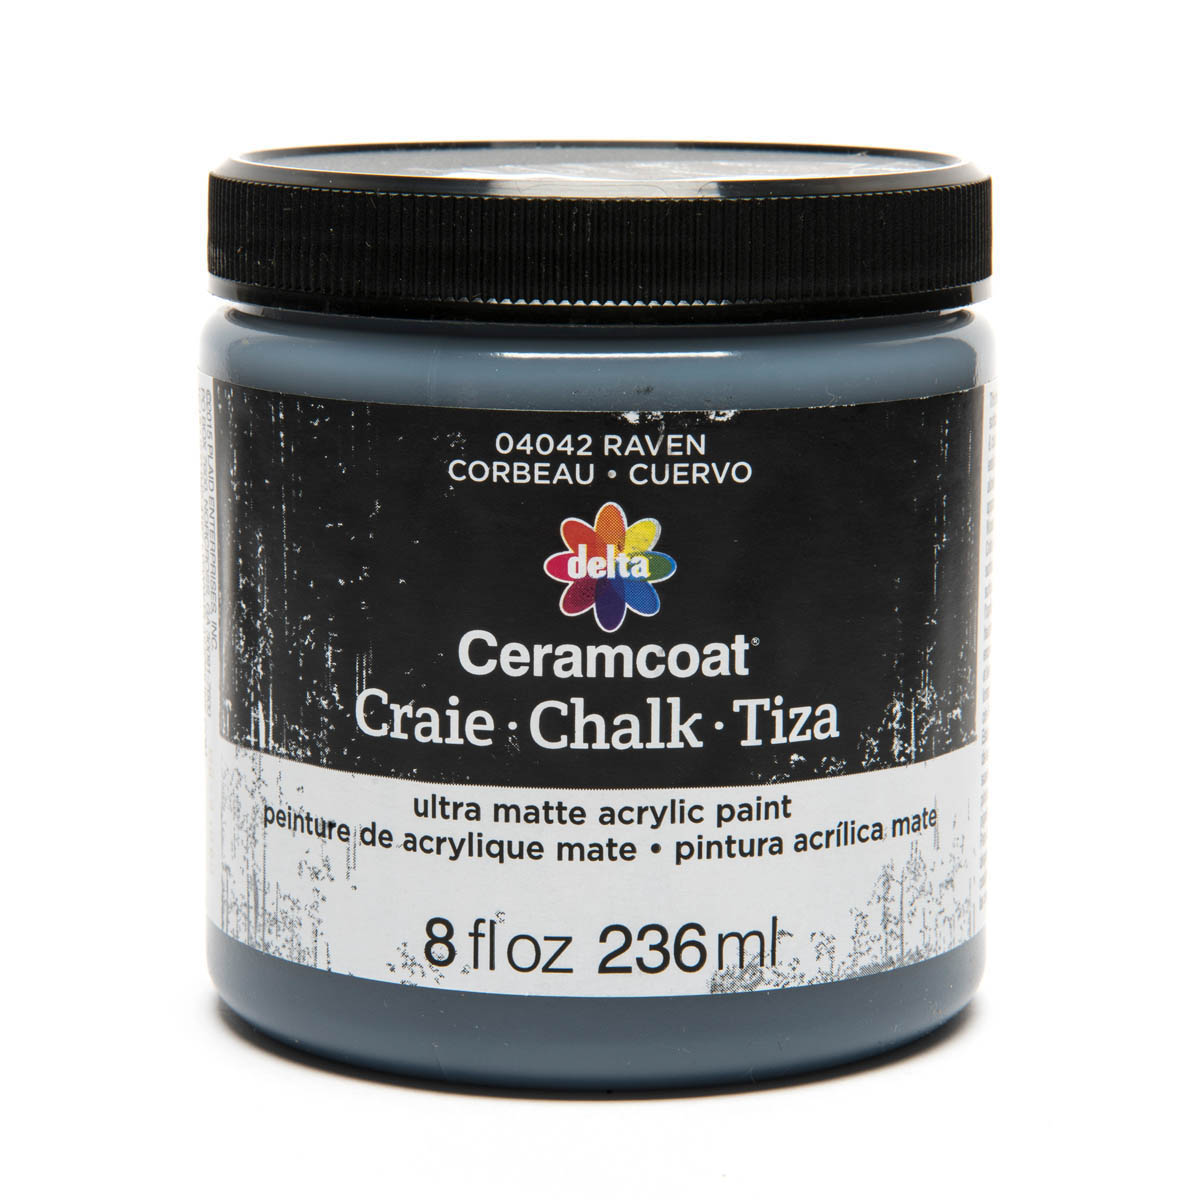 Delta Ceramcoat ® Chalk - Raven, 8 oz. - 04042